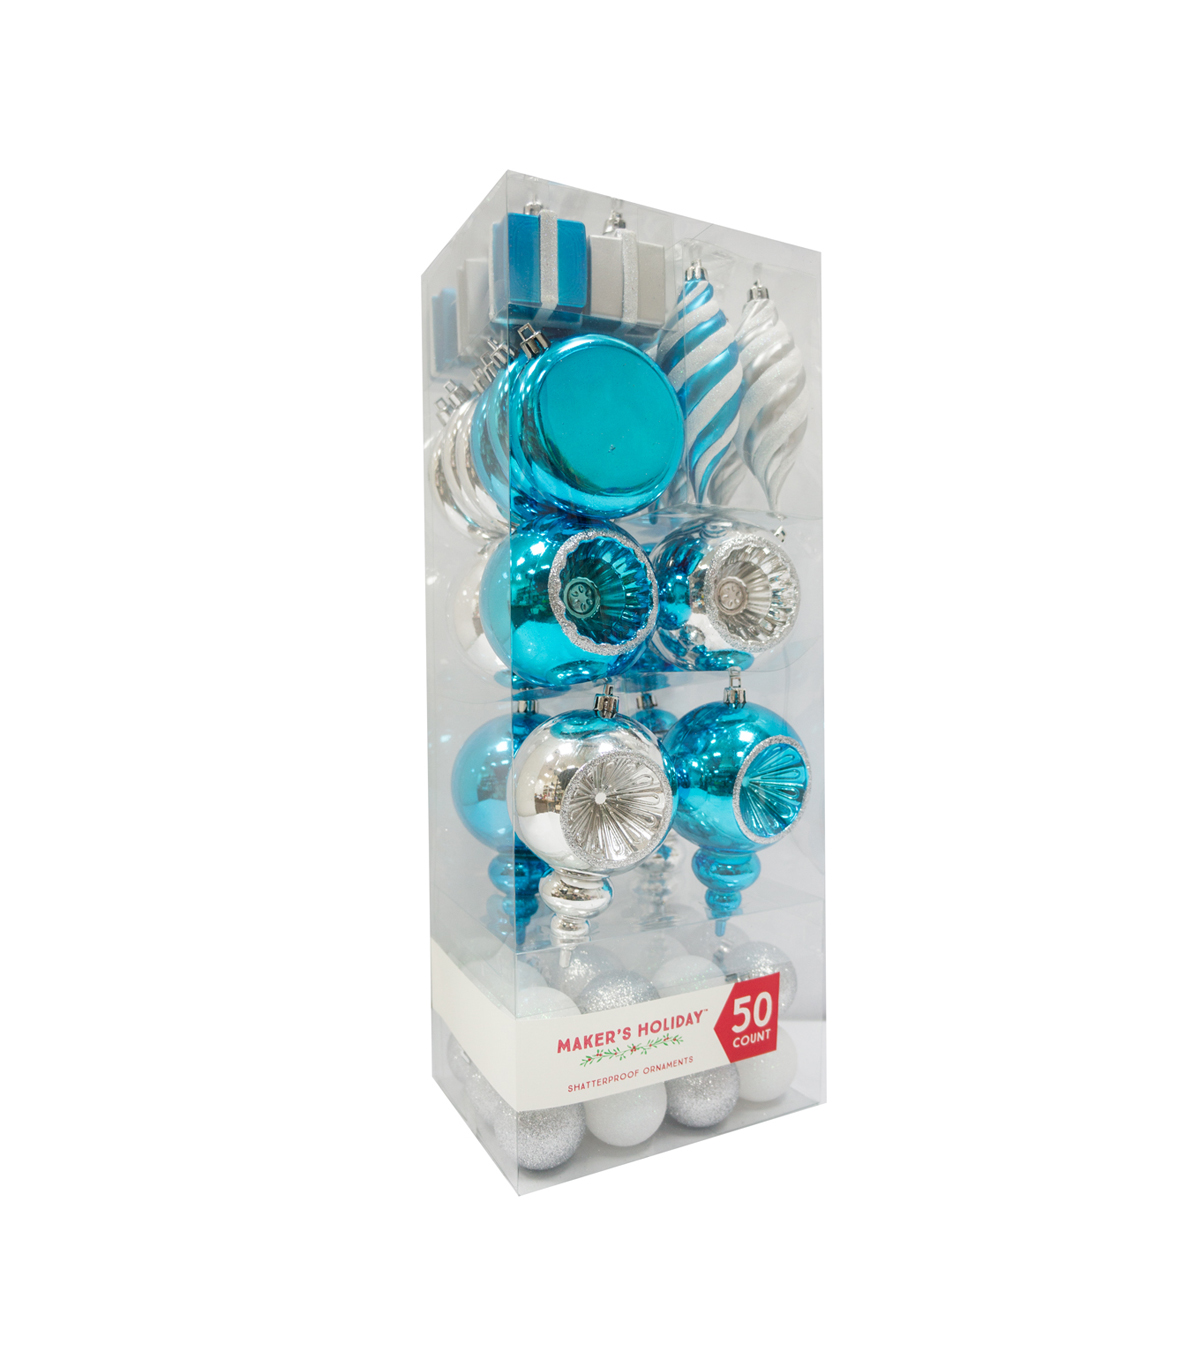 Maker\u0027s Holiday 50ct Shatterproof Ornaments-Turquoise & Silver